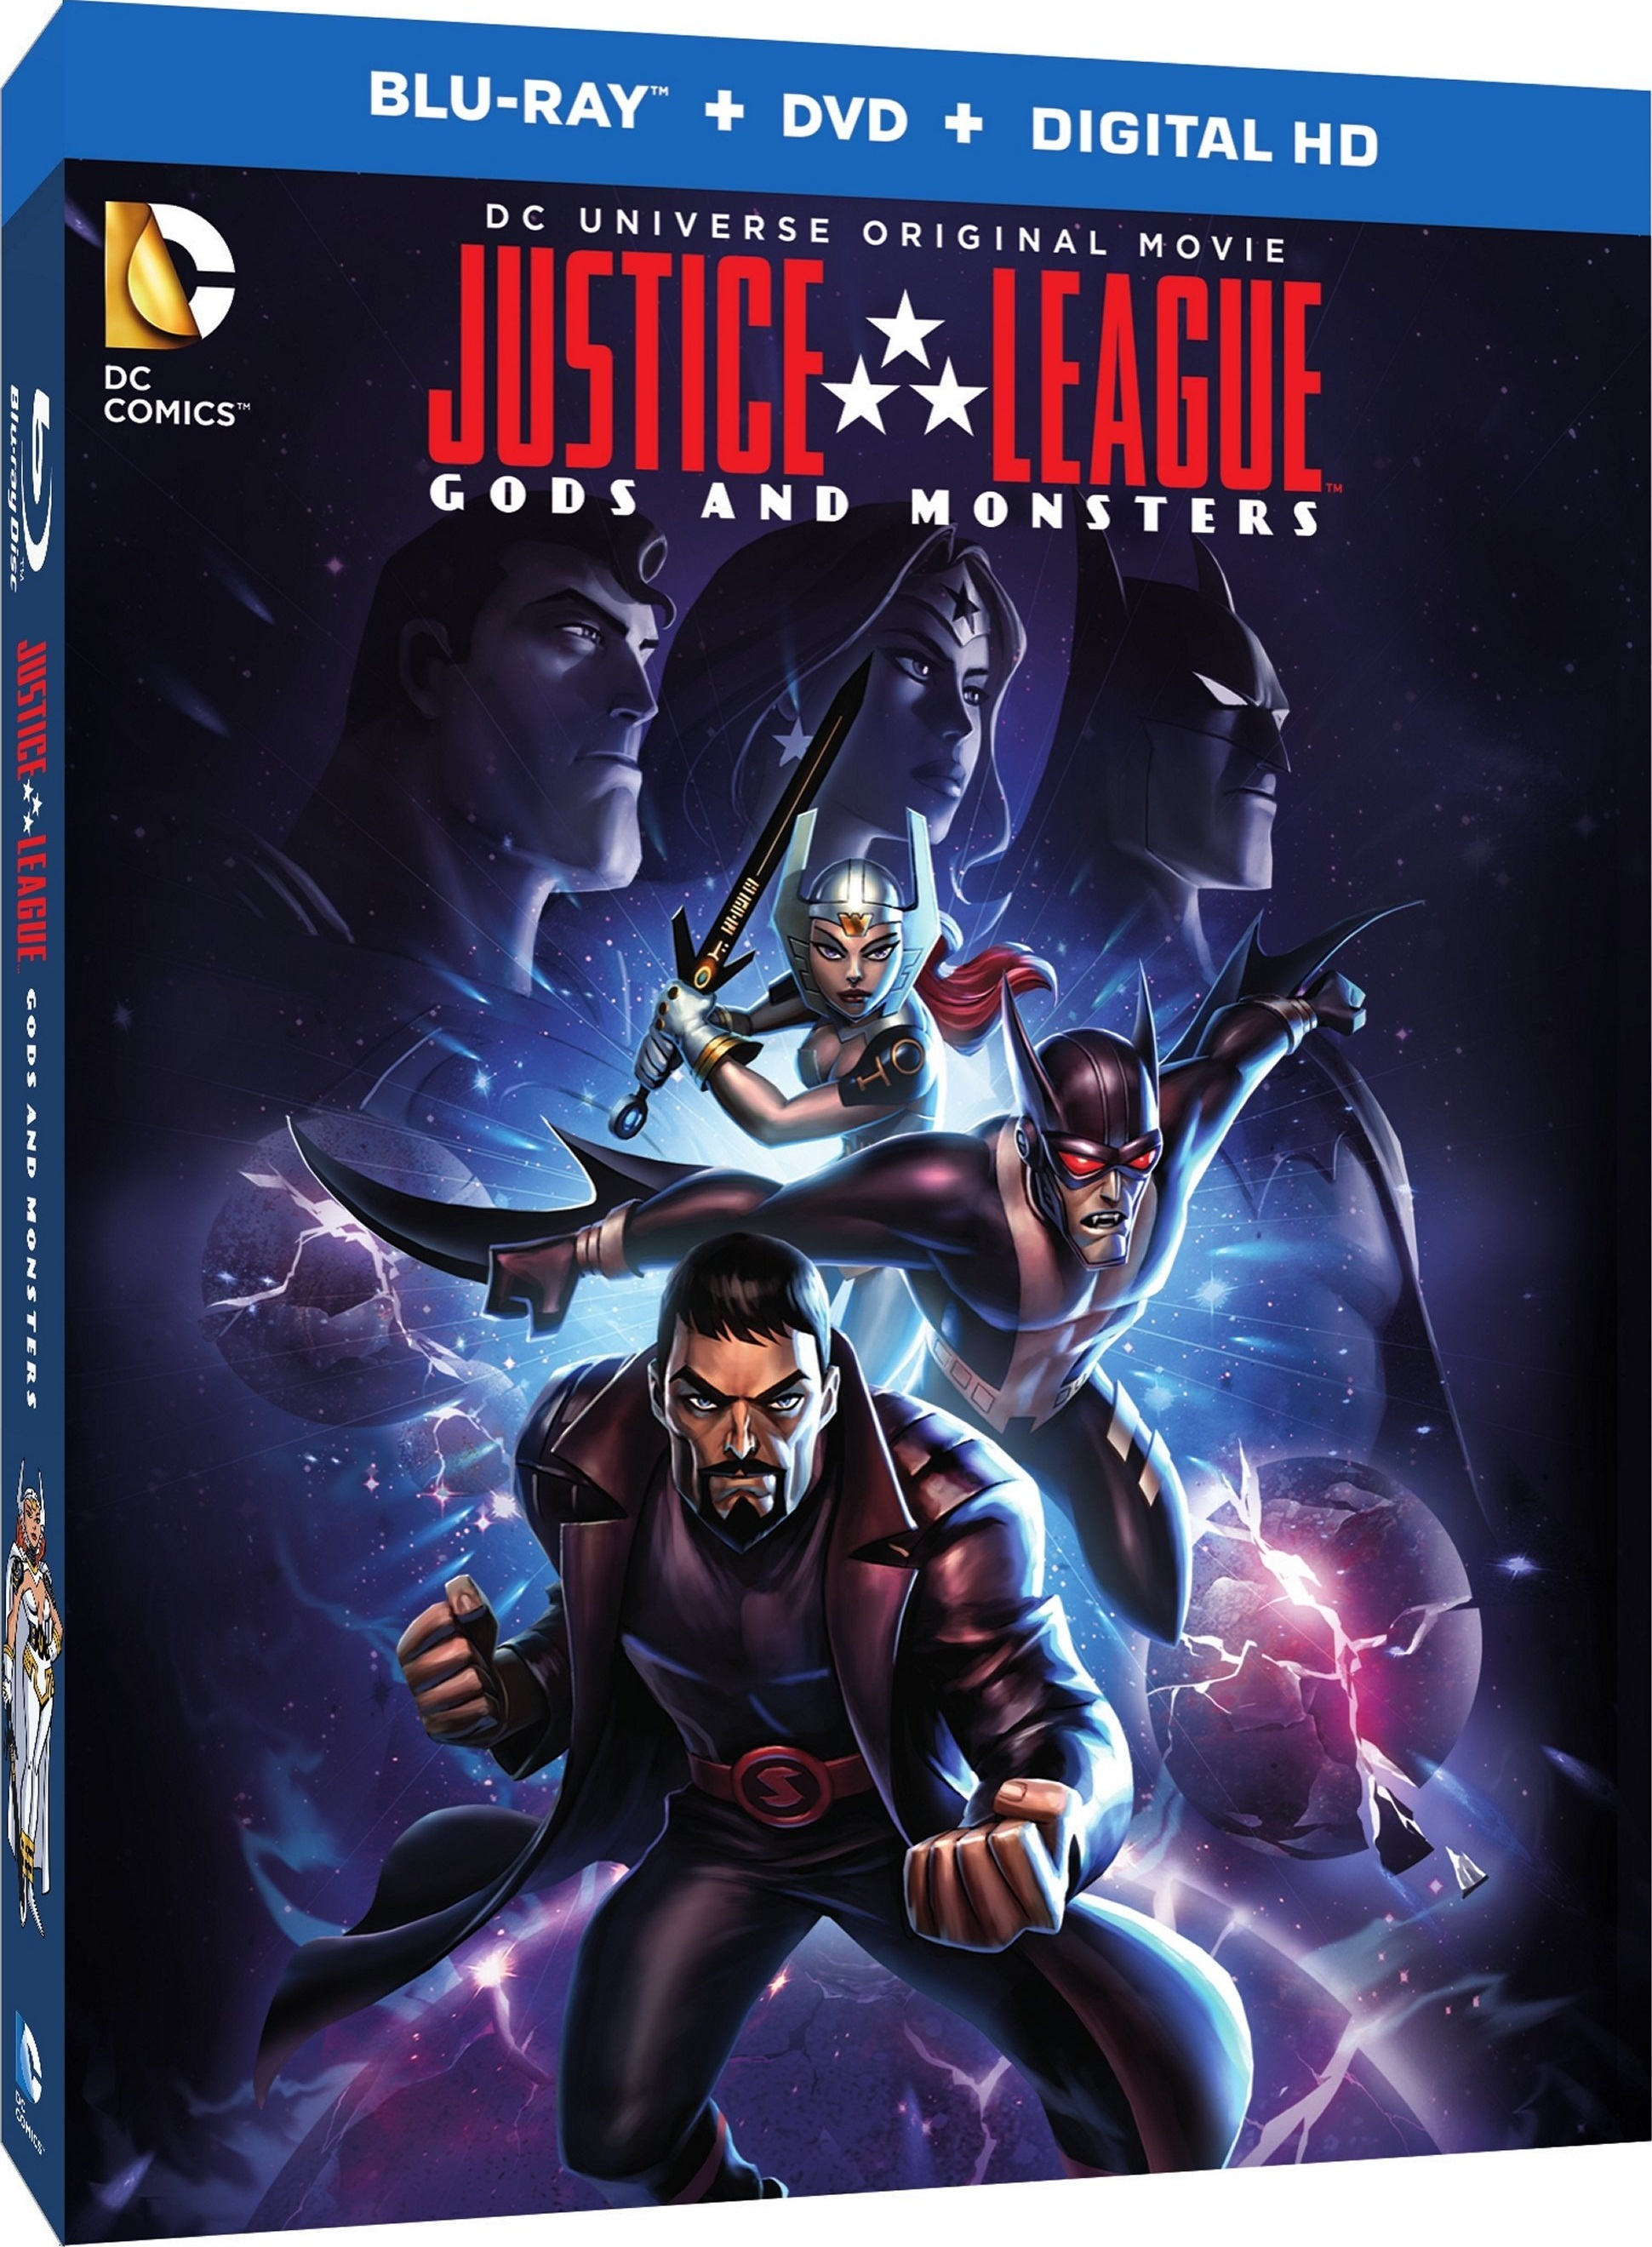 Justice League Gods and Monsters Blu-ray Review